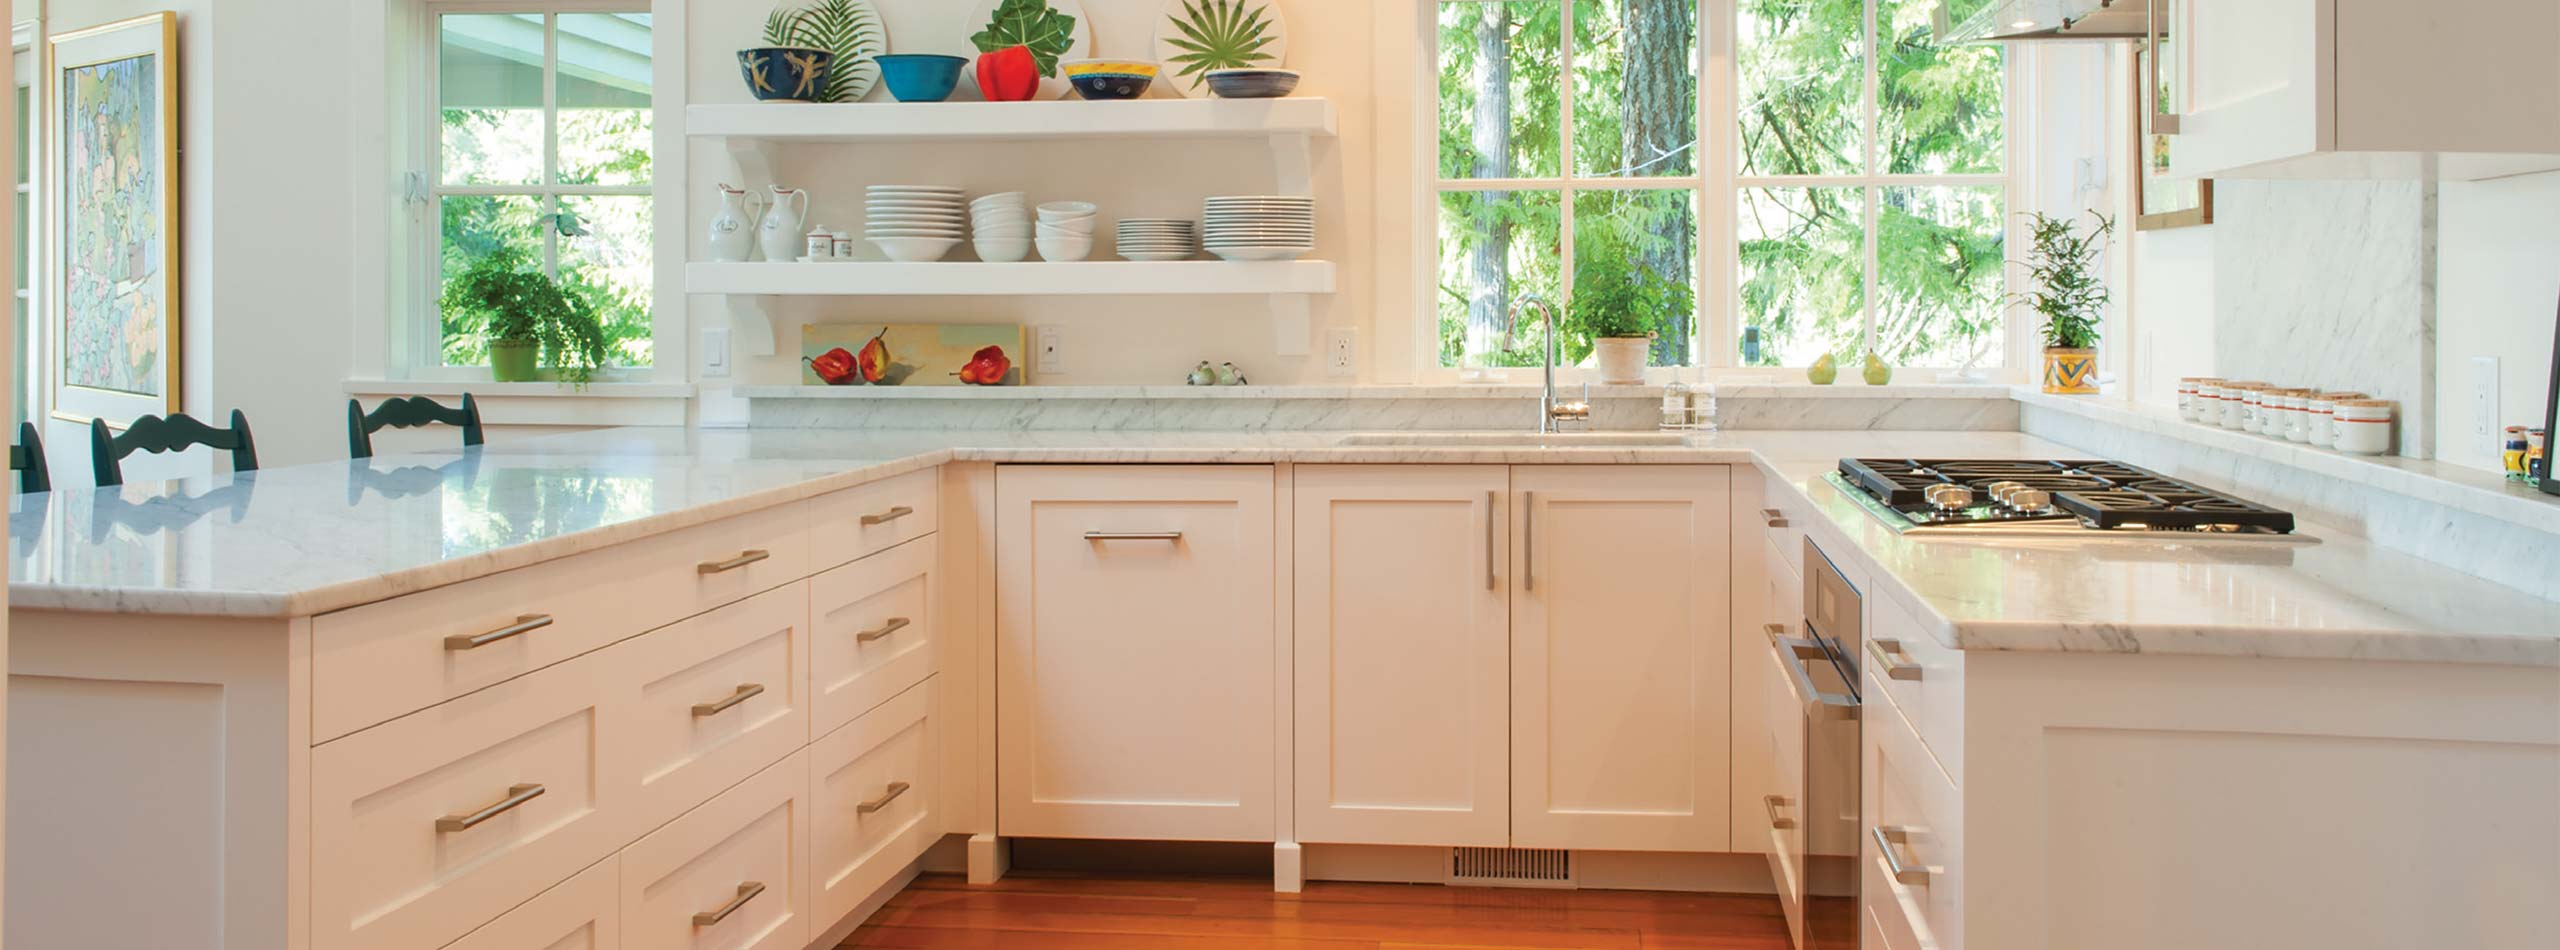 Cabinet Works Custom Cabinets Sidney Home